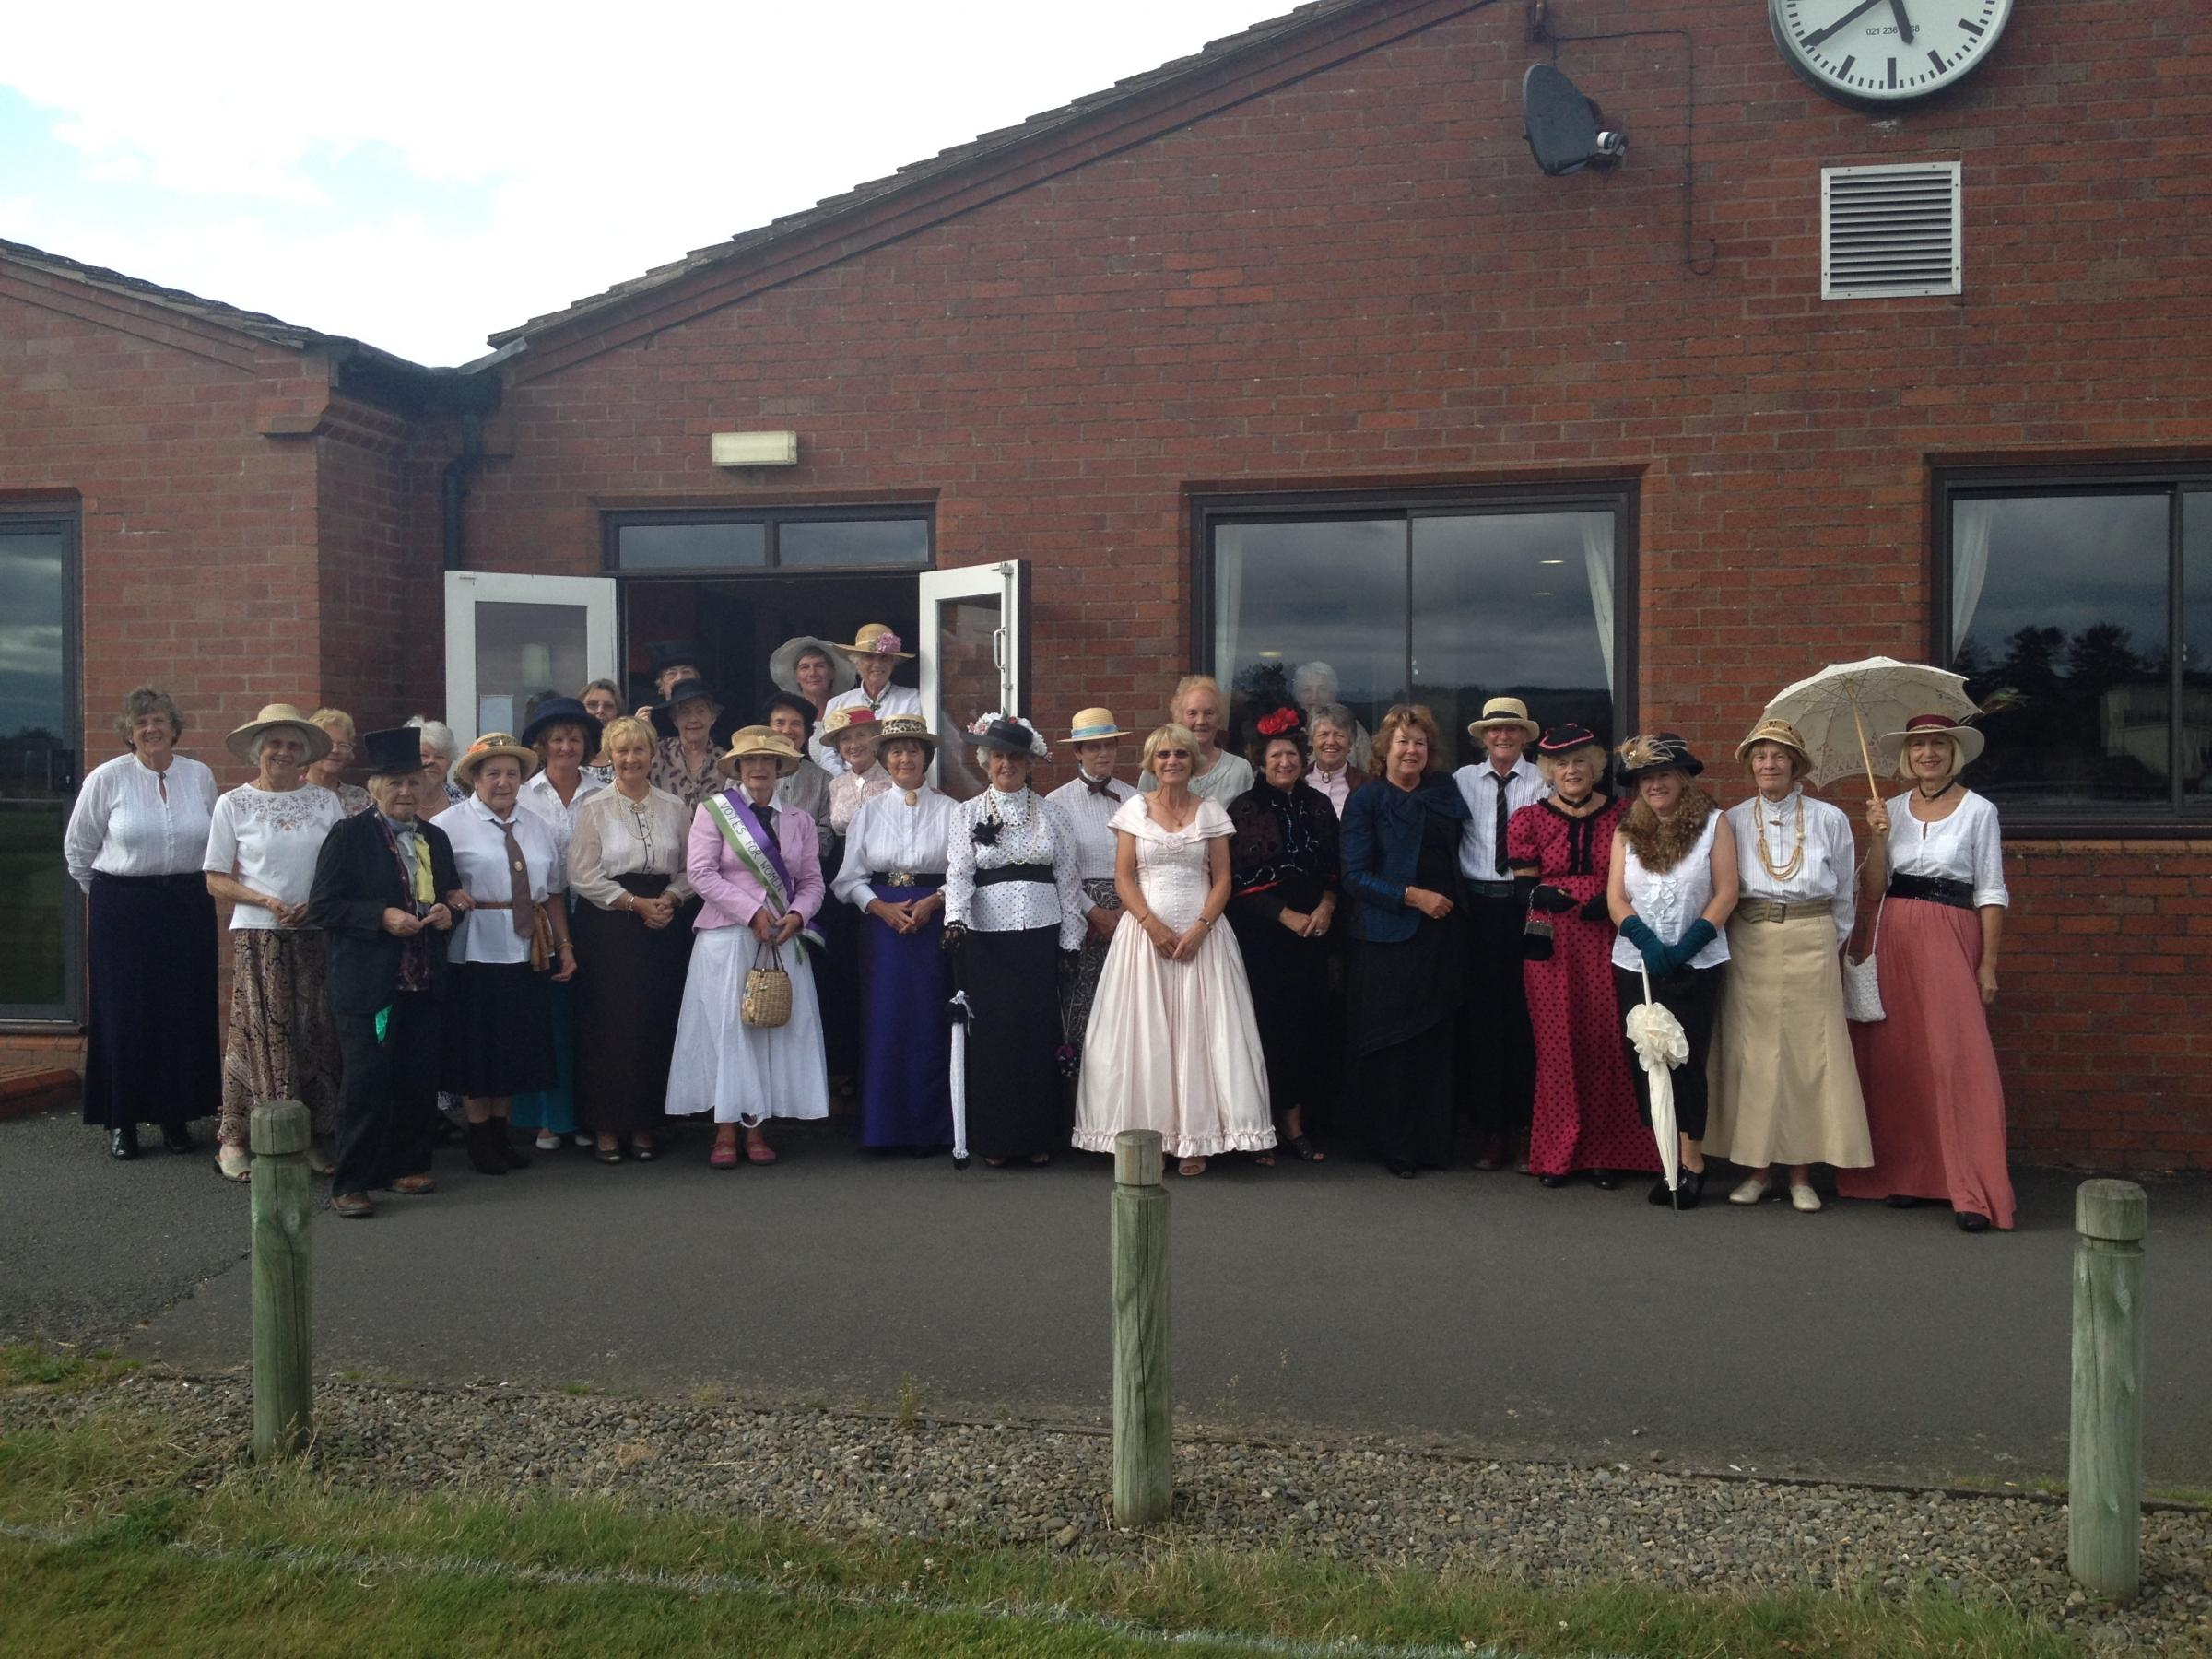 Ladies at Ludlow Golf Club dressed in Victorian costume to mark its 125th anniversary.